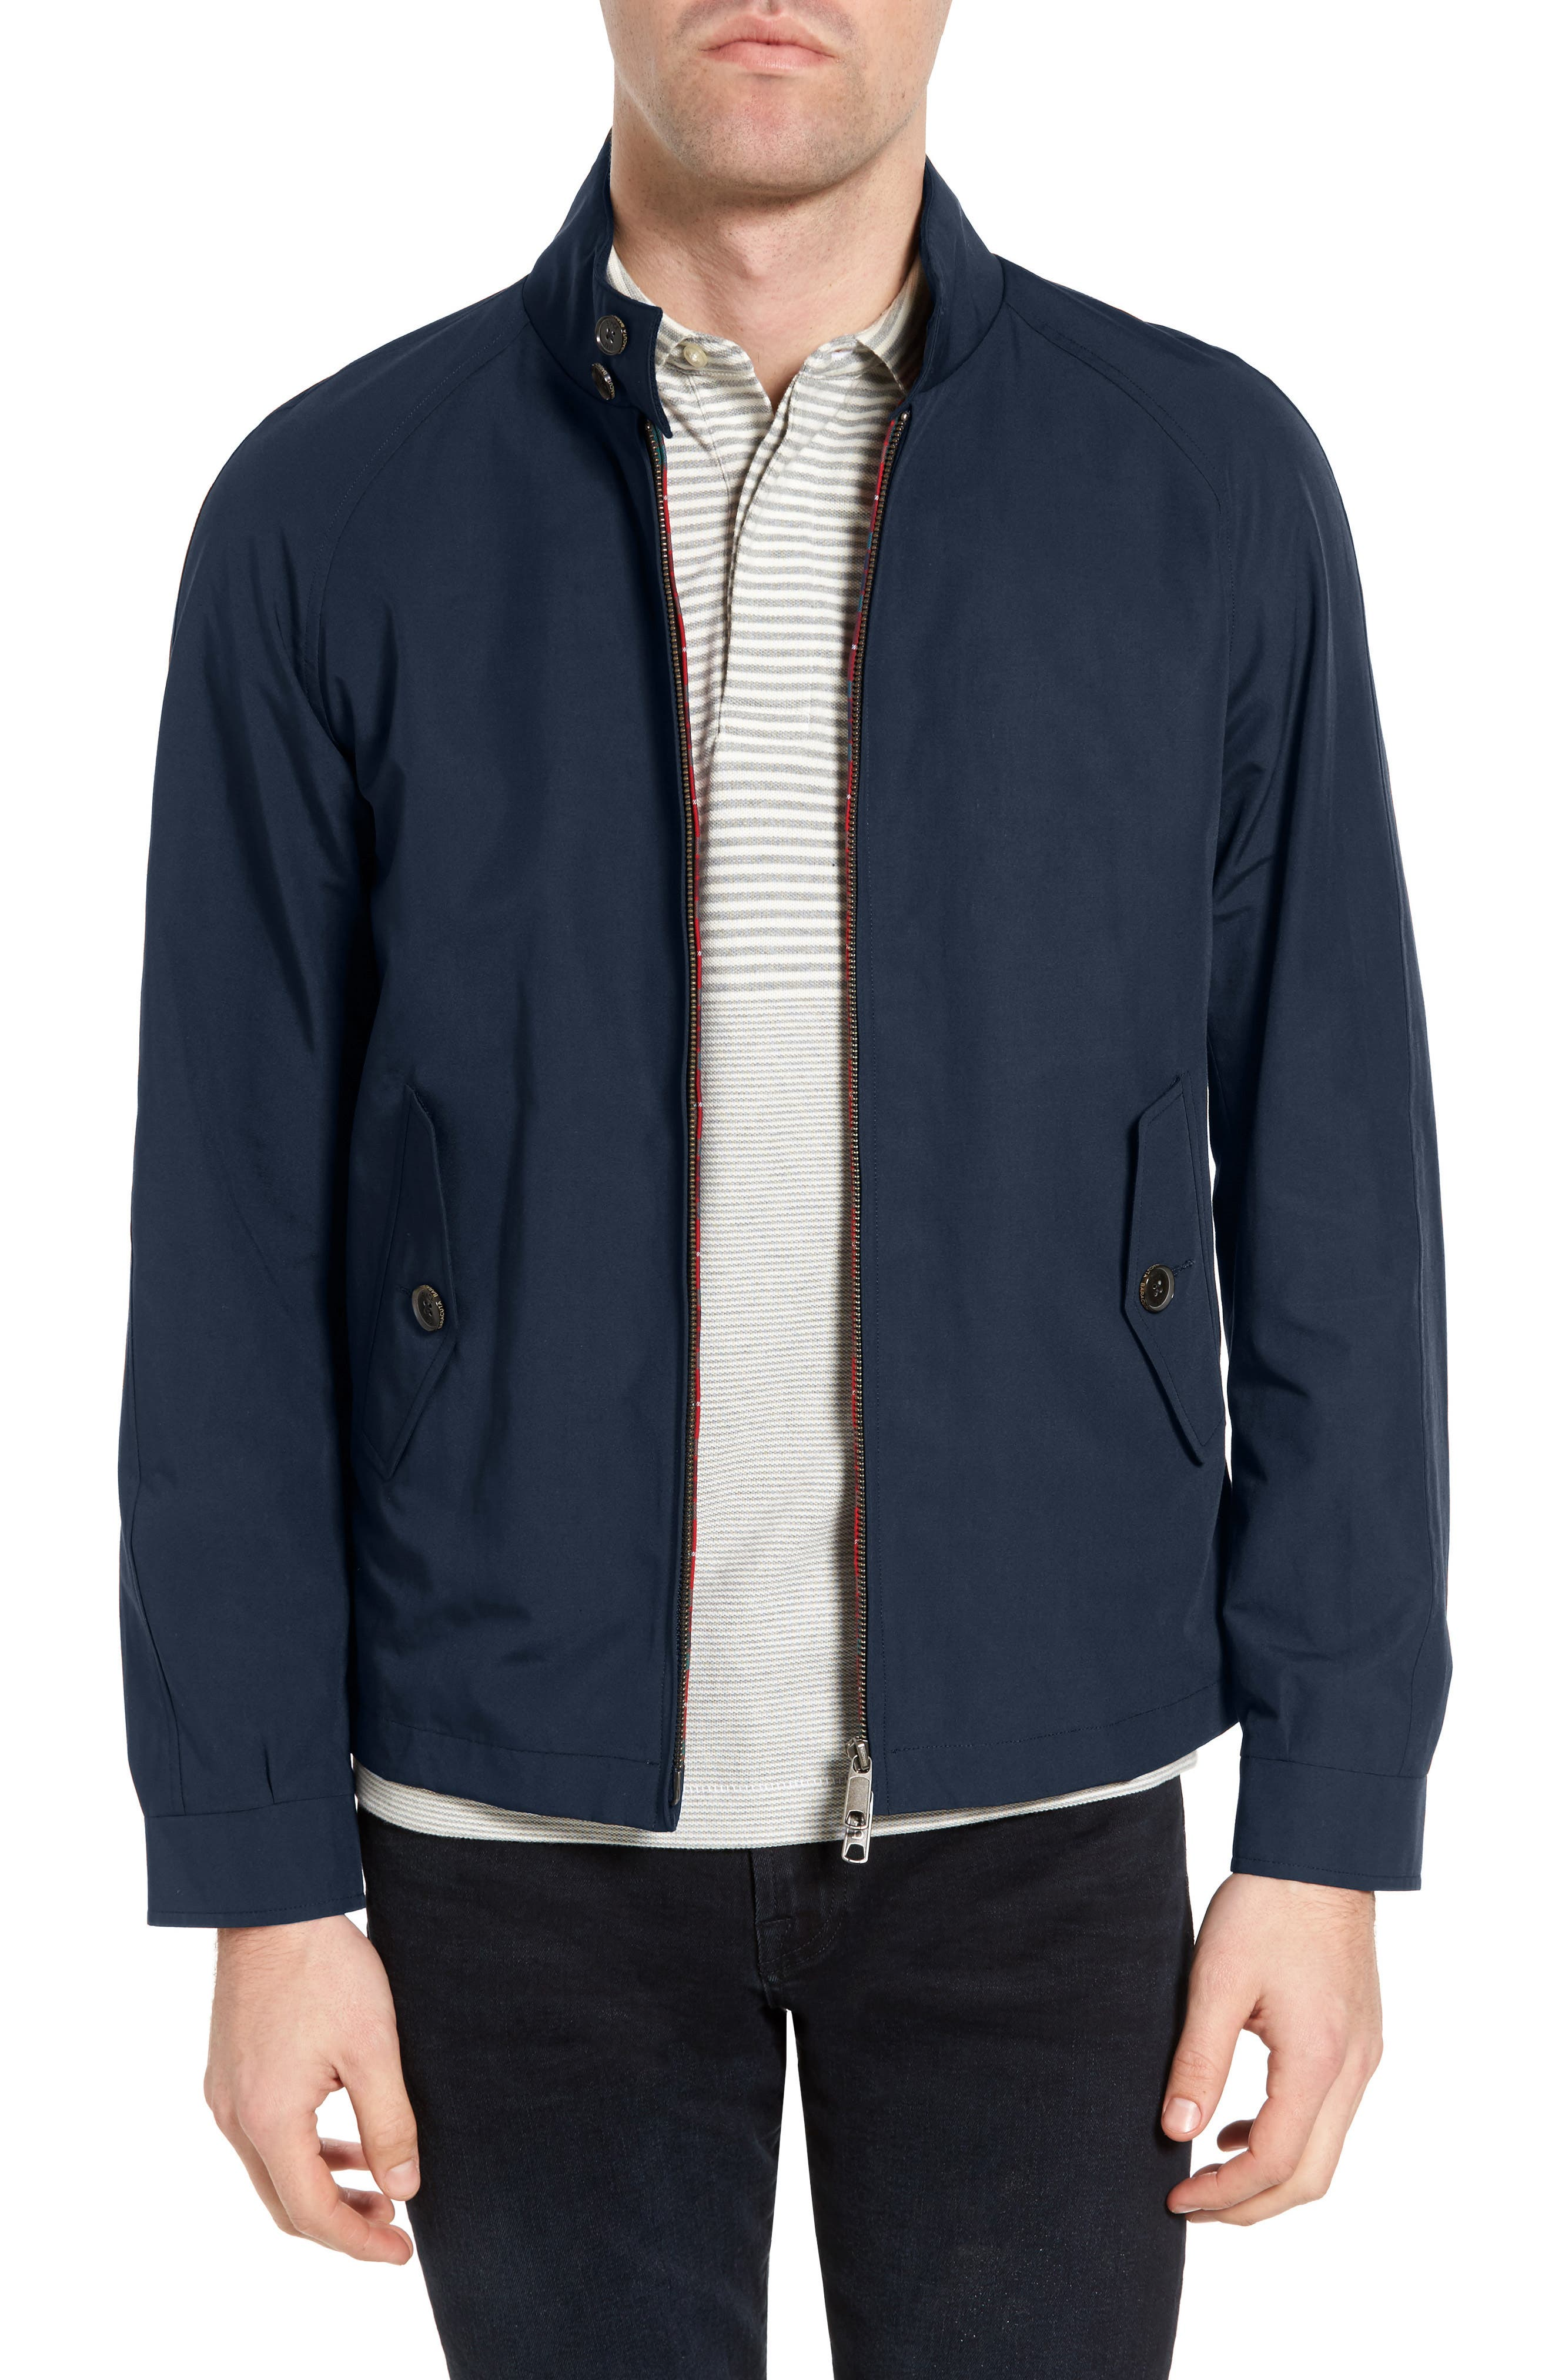 G4 Water Repellent Harrington Jacket,                             Main thumbnail 1, color,                             NAVY